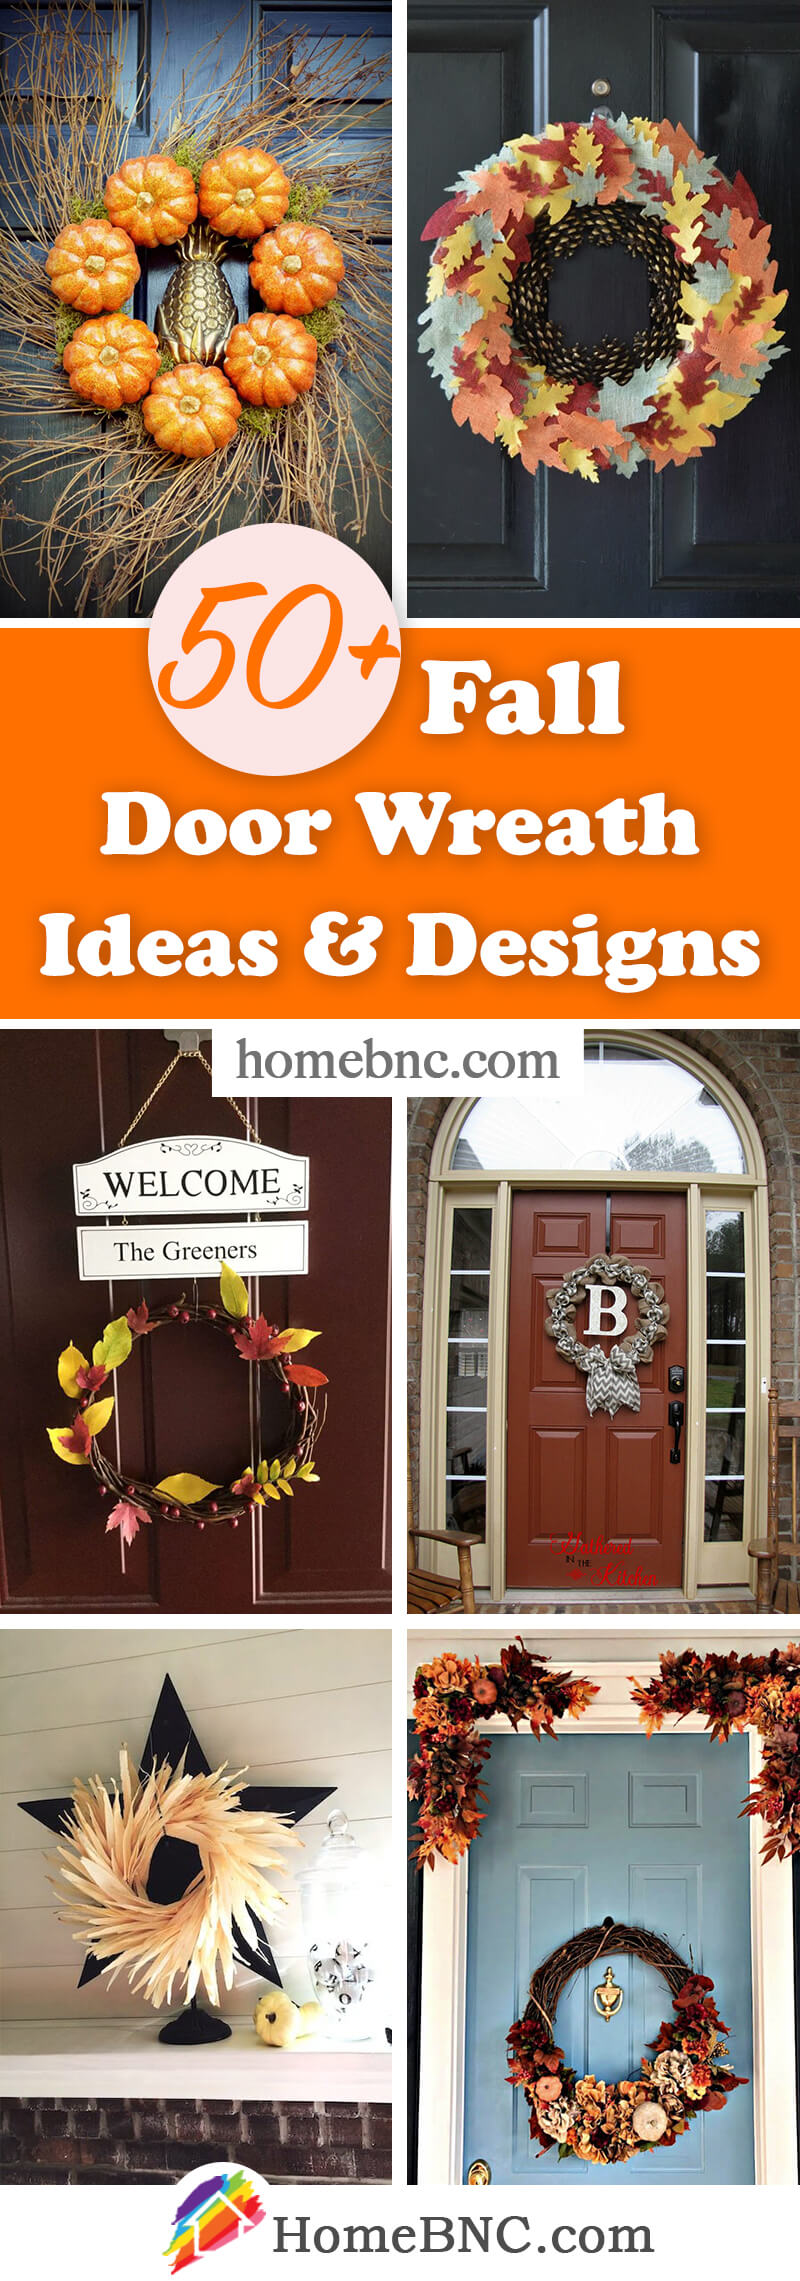 50 Best Fall Door Wreath Ideas And Designs For 2021